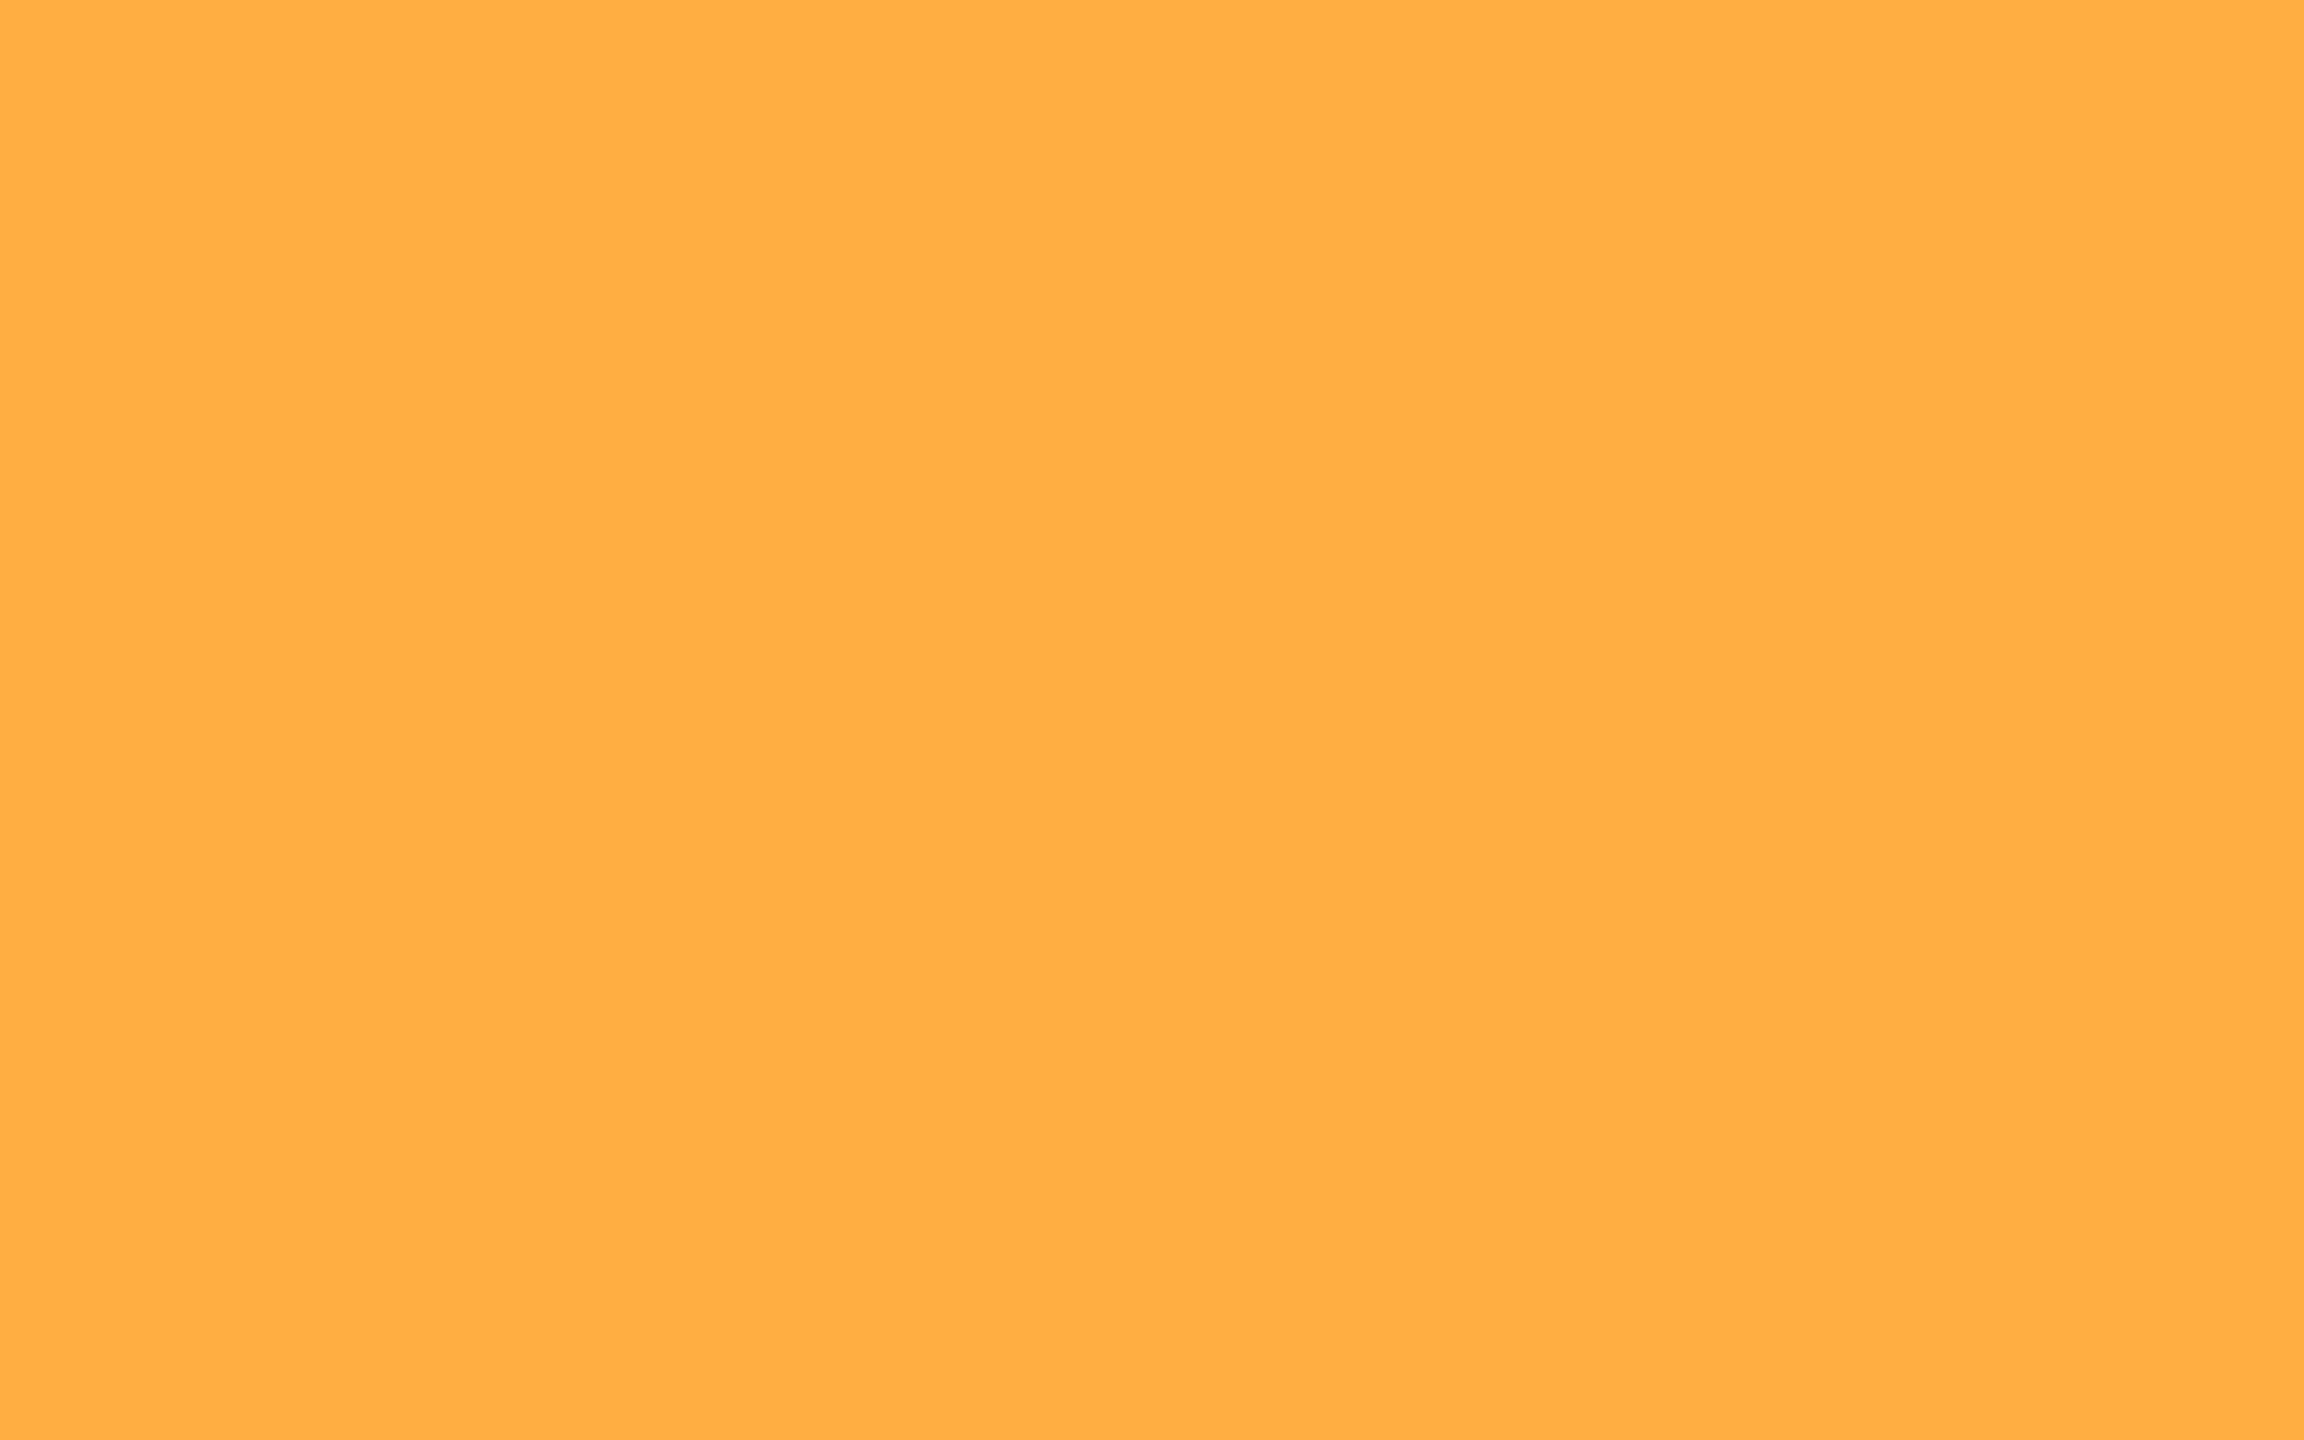 2304x1440 Yellow Orange Solid Color Background